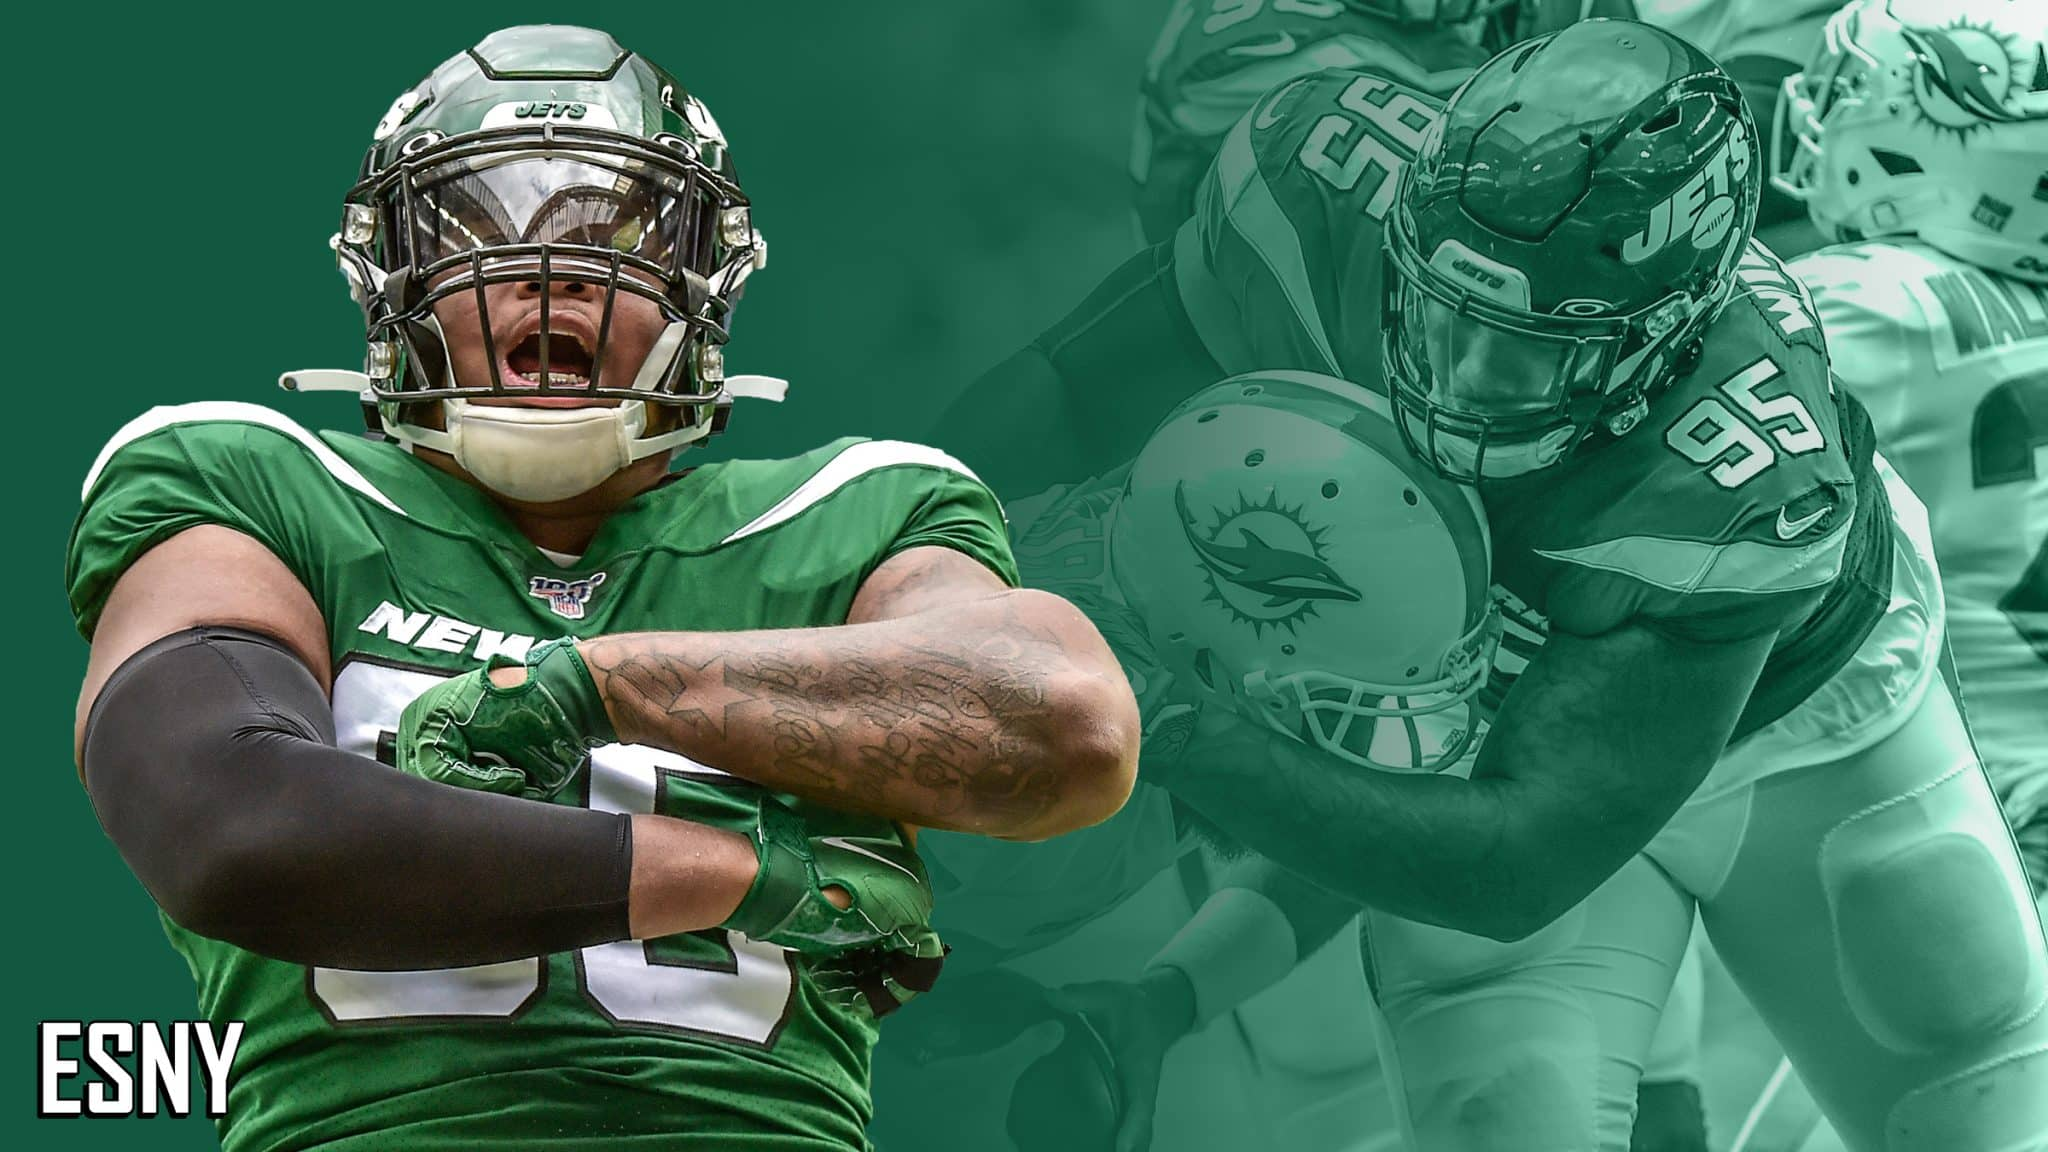 The delightful education of New York Jets youngster Quinnen Williams